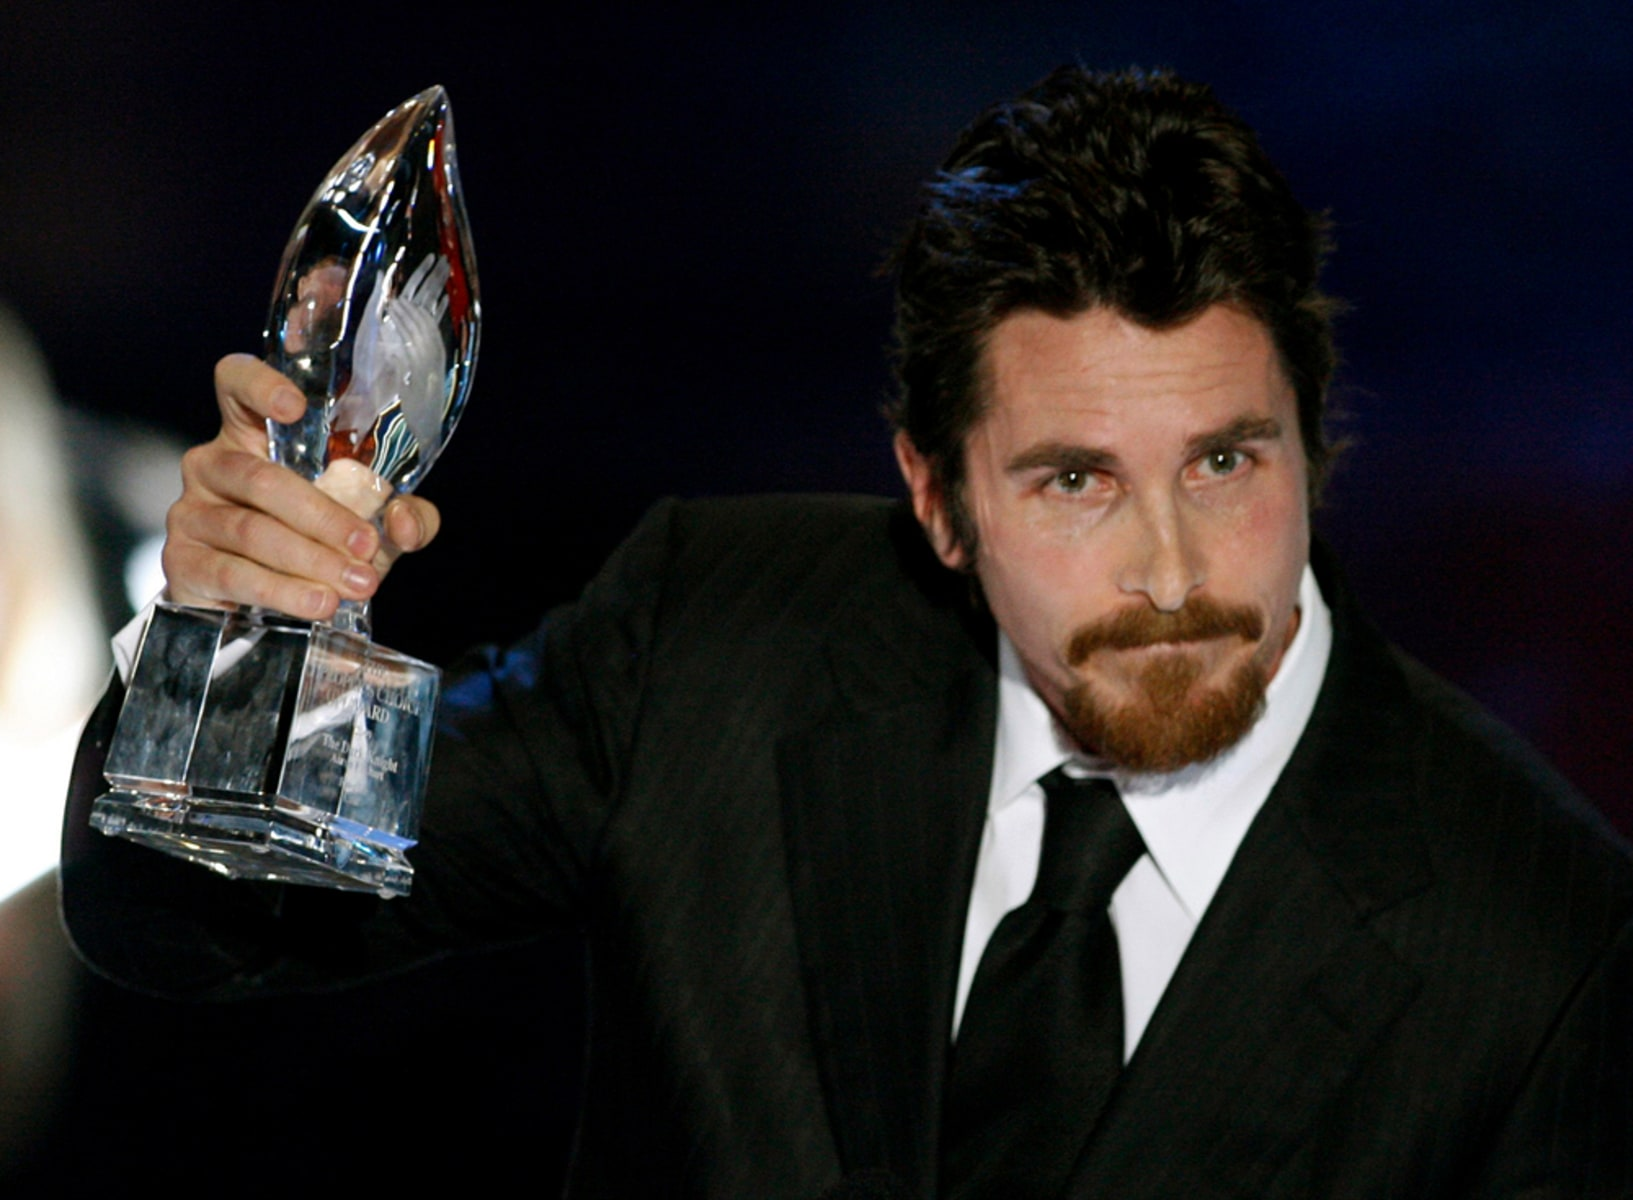 the life and career of the actor christian bale Reviews of the life and movies of actor christian bale christian bale   please leave a comment or review the life, career, or any works of christian bale.